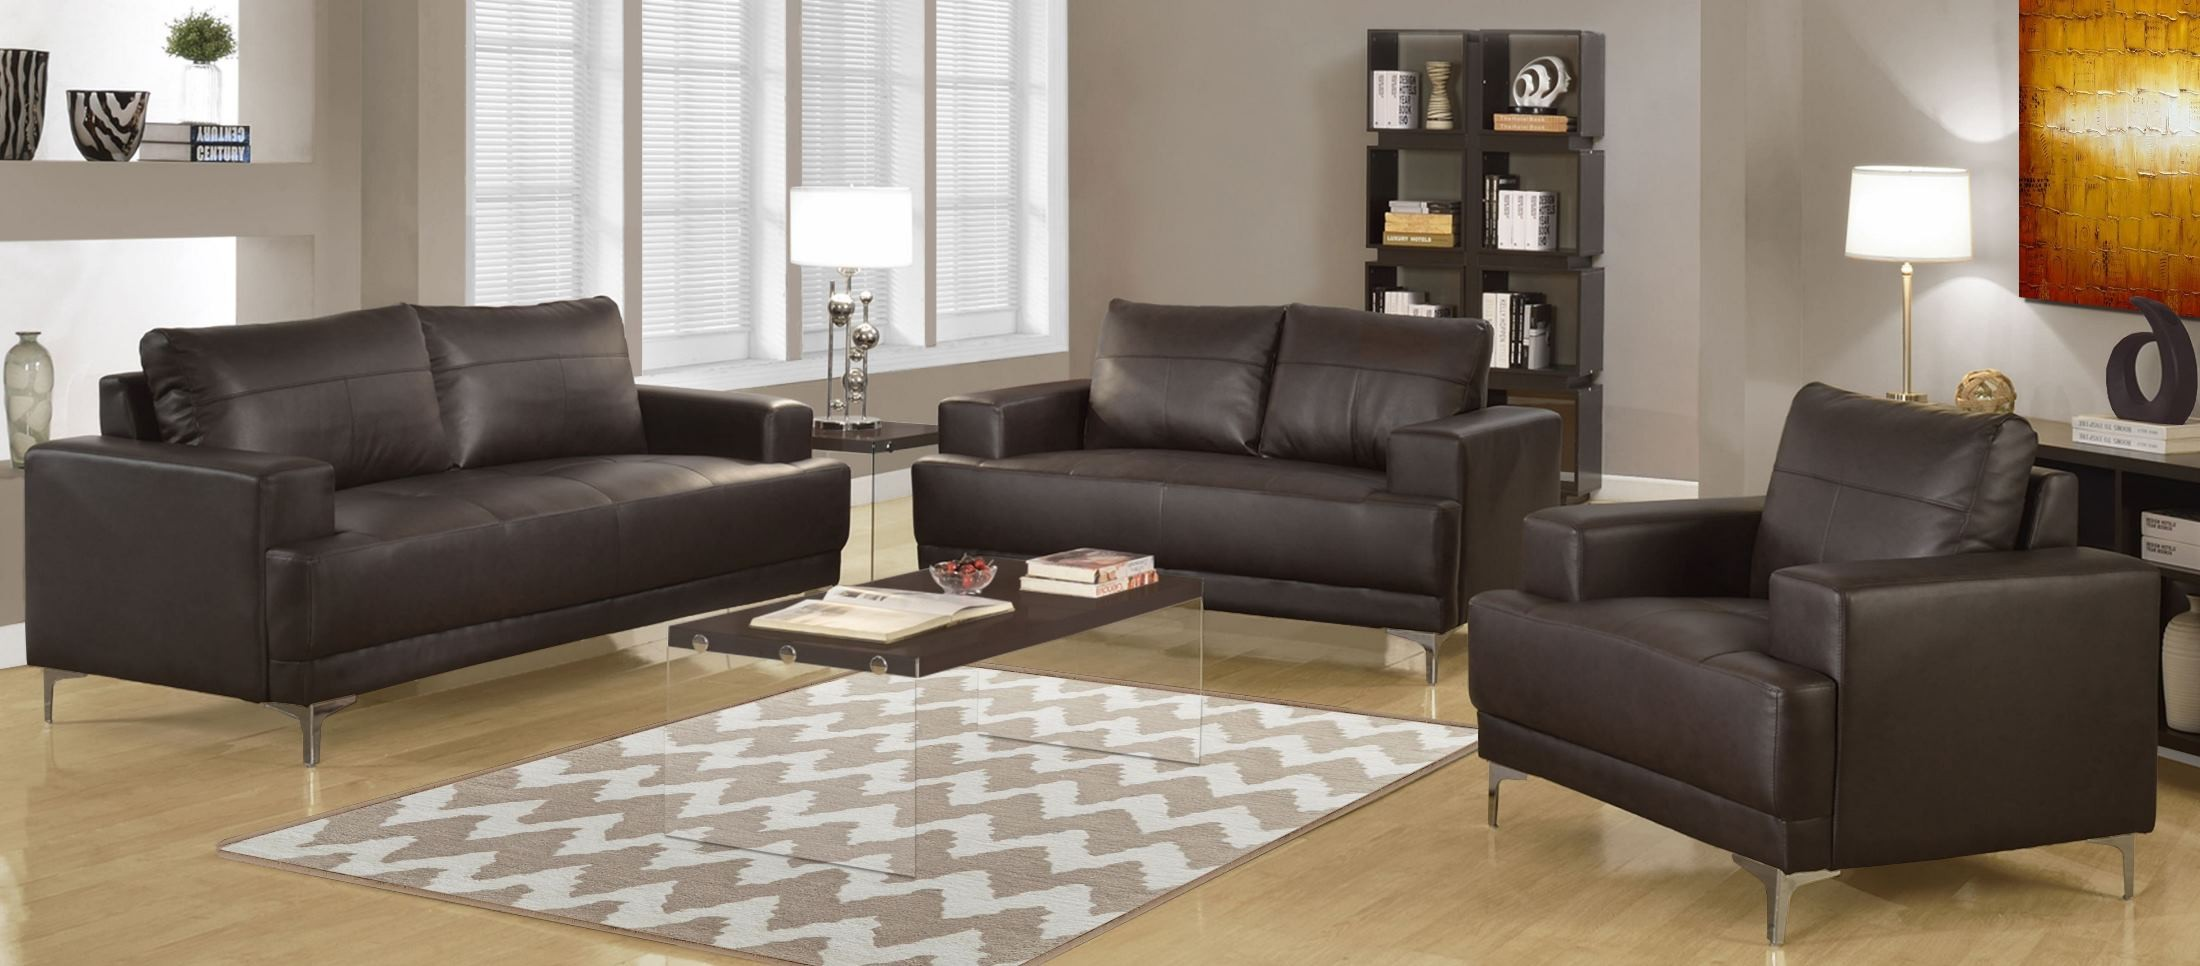 brown bonded leather living room set 8603br monarch. Black Bedroom Furniture Sets. Home Design Ideas